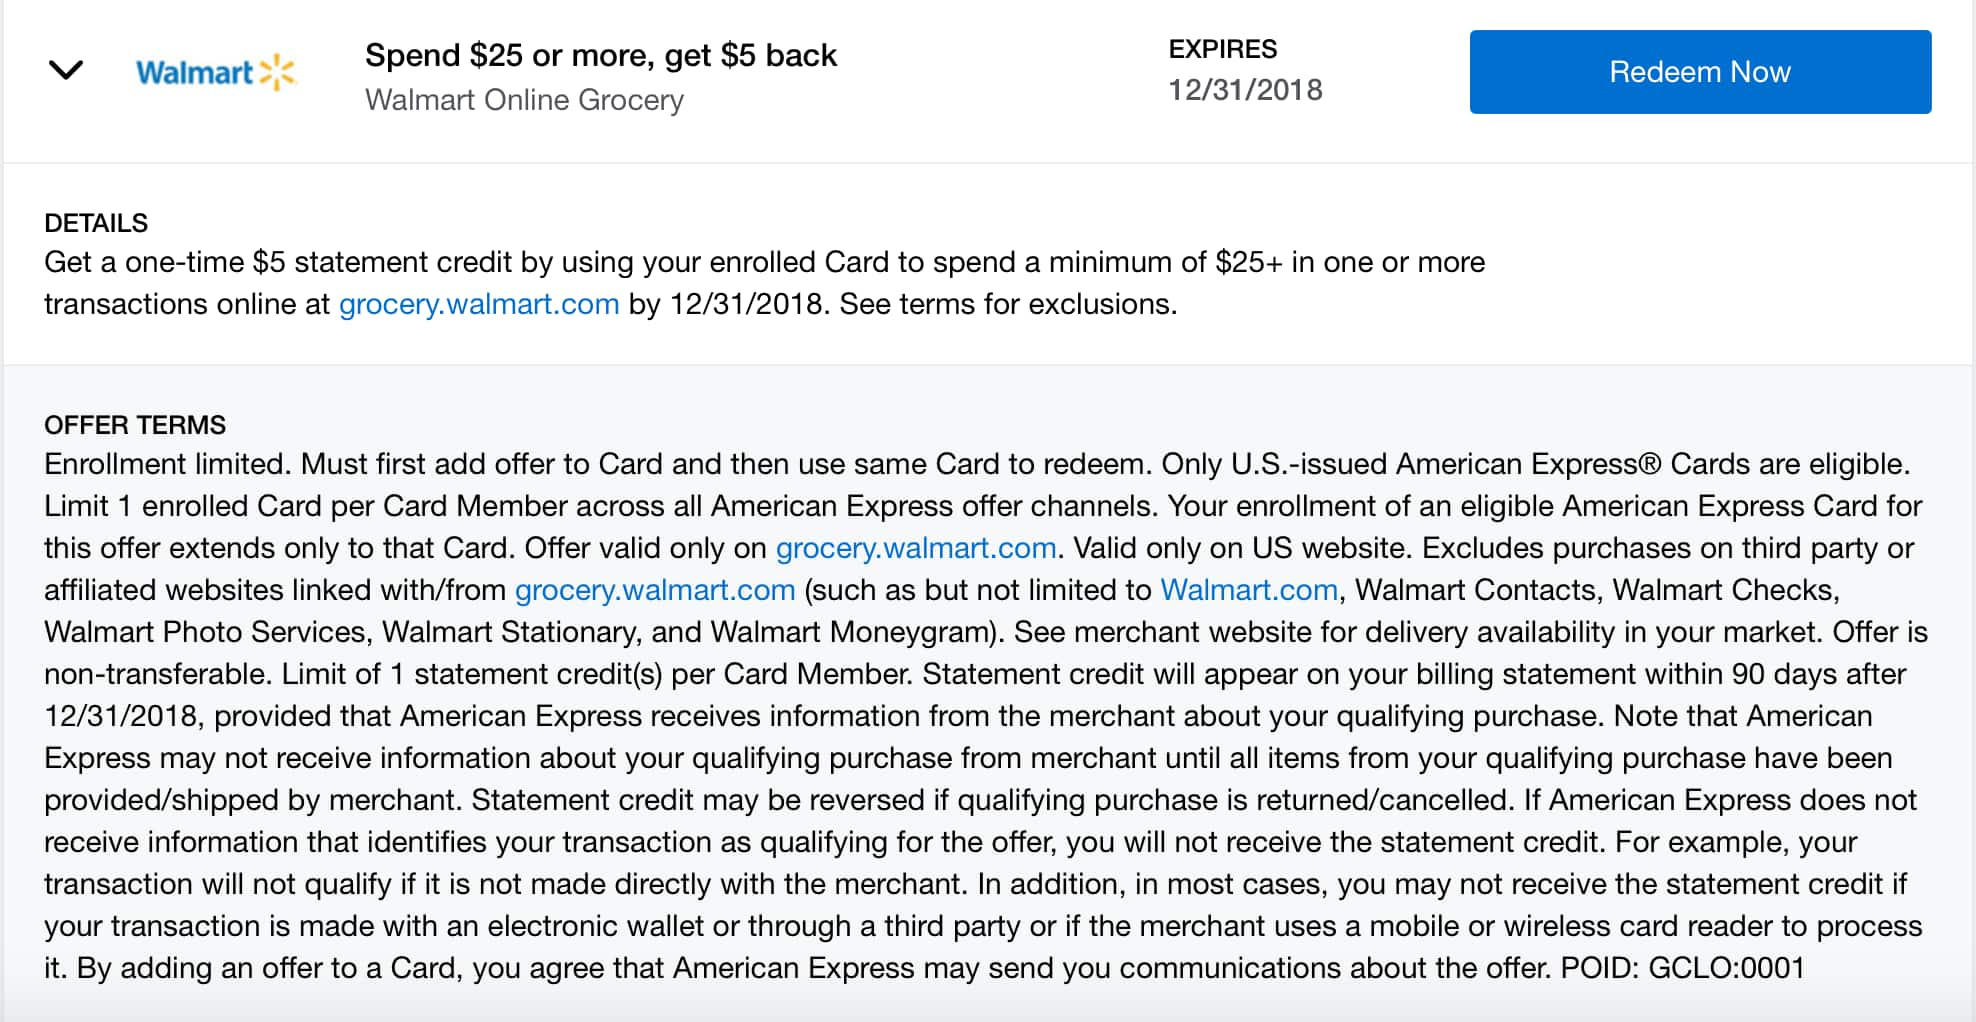 YMMV Amex Offers: Spend $25 or more and get $5 back at Walmart Online Grocery